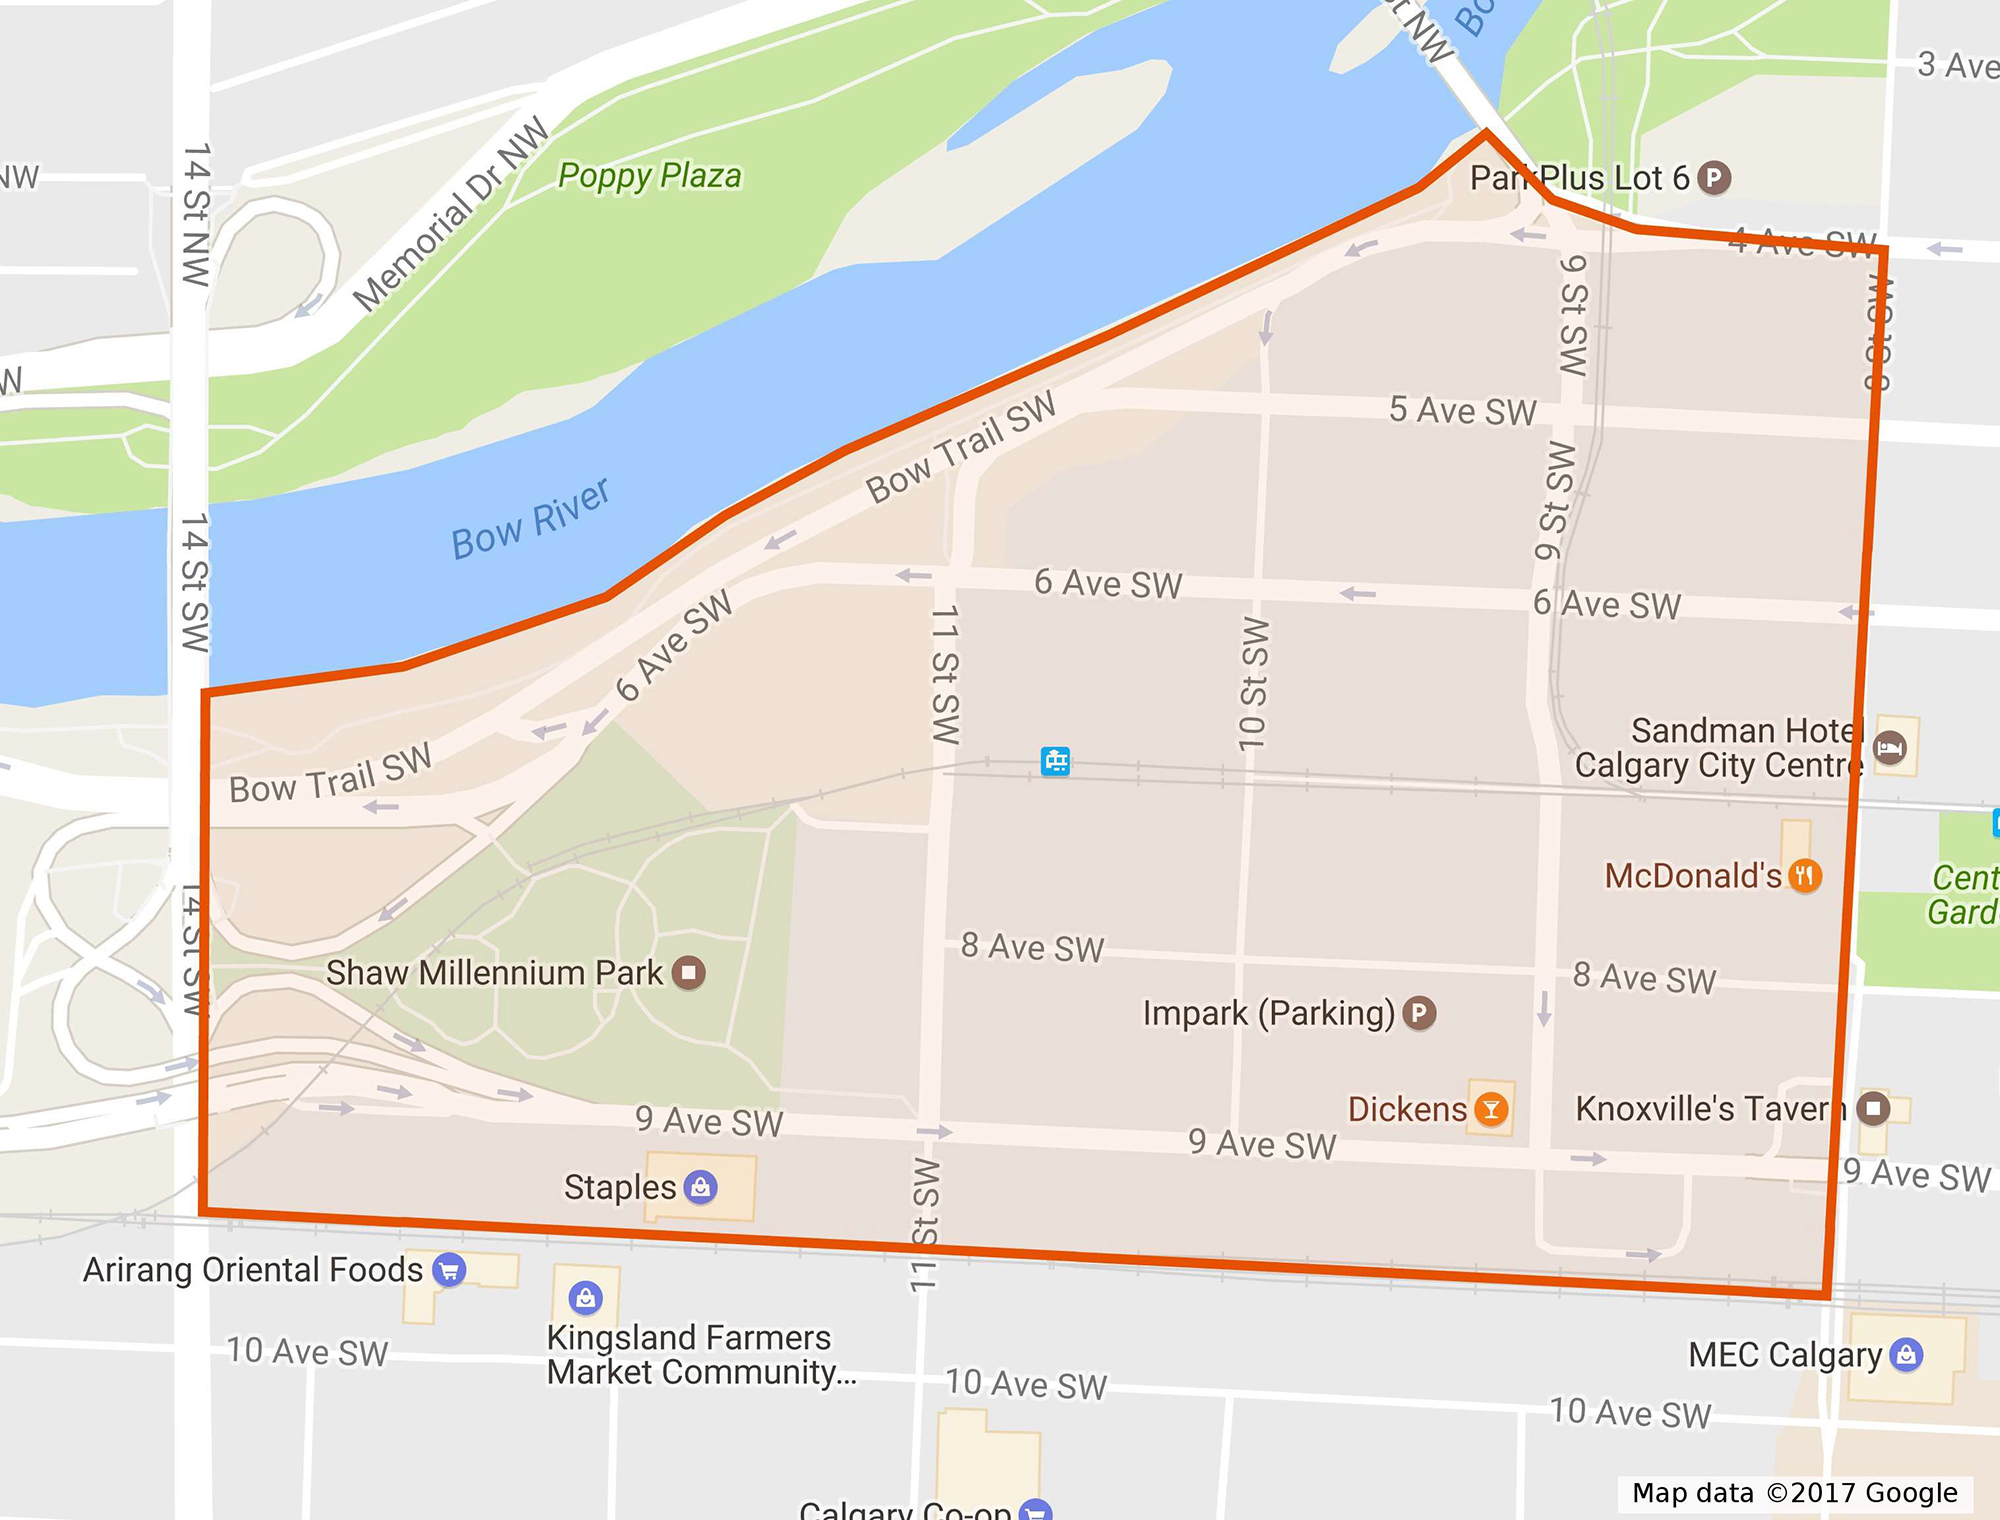 Downtown West End area - click for larger map.